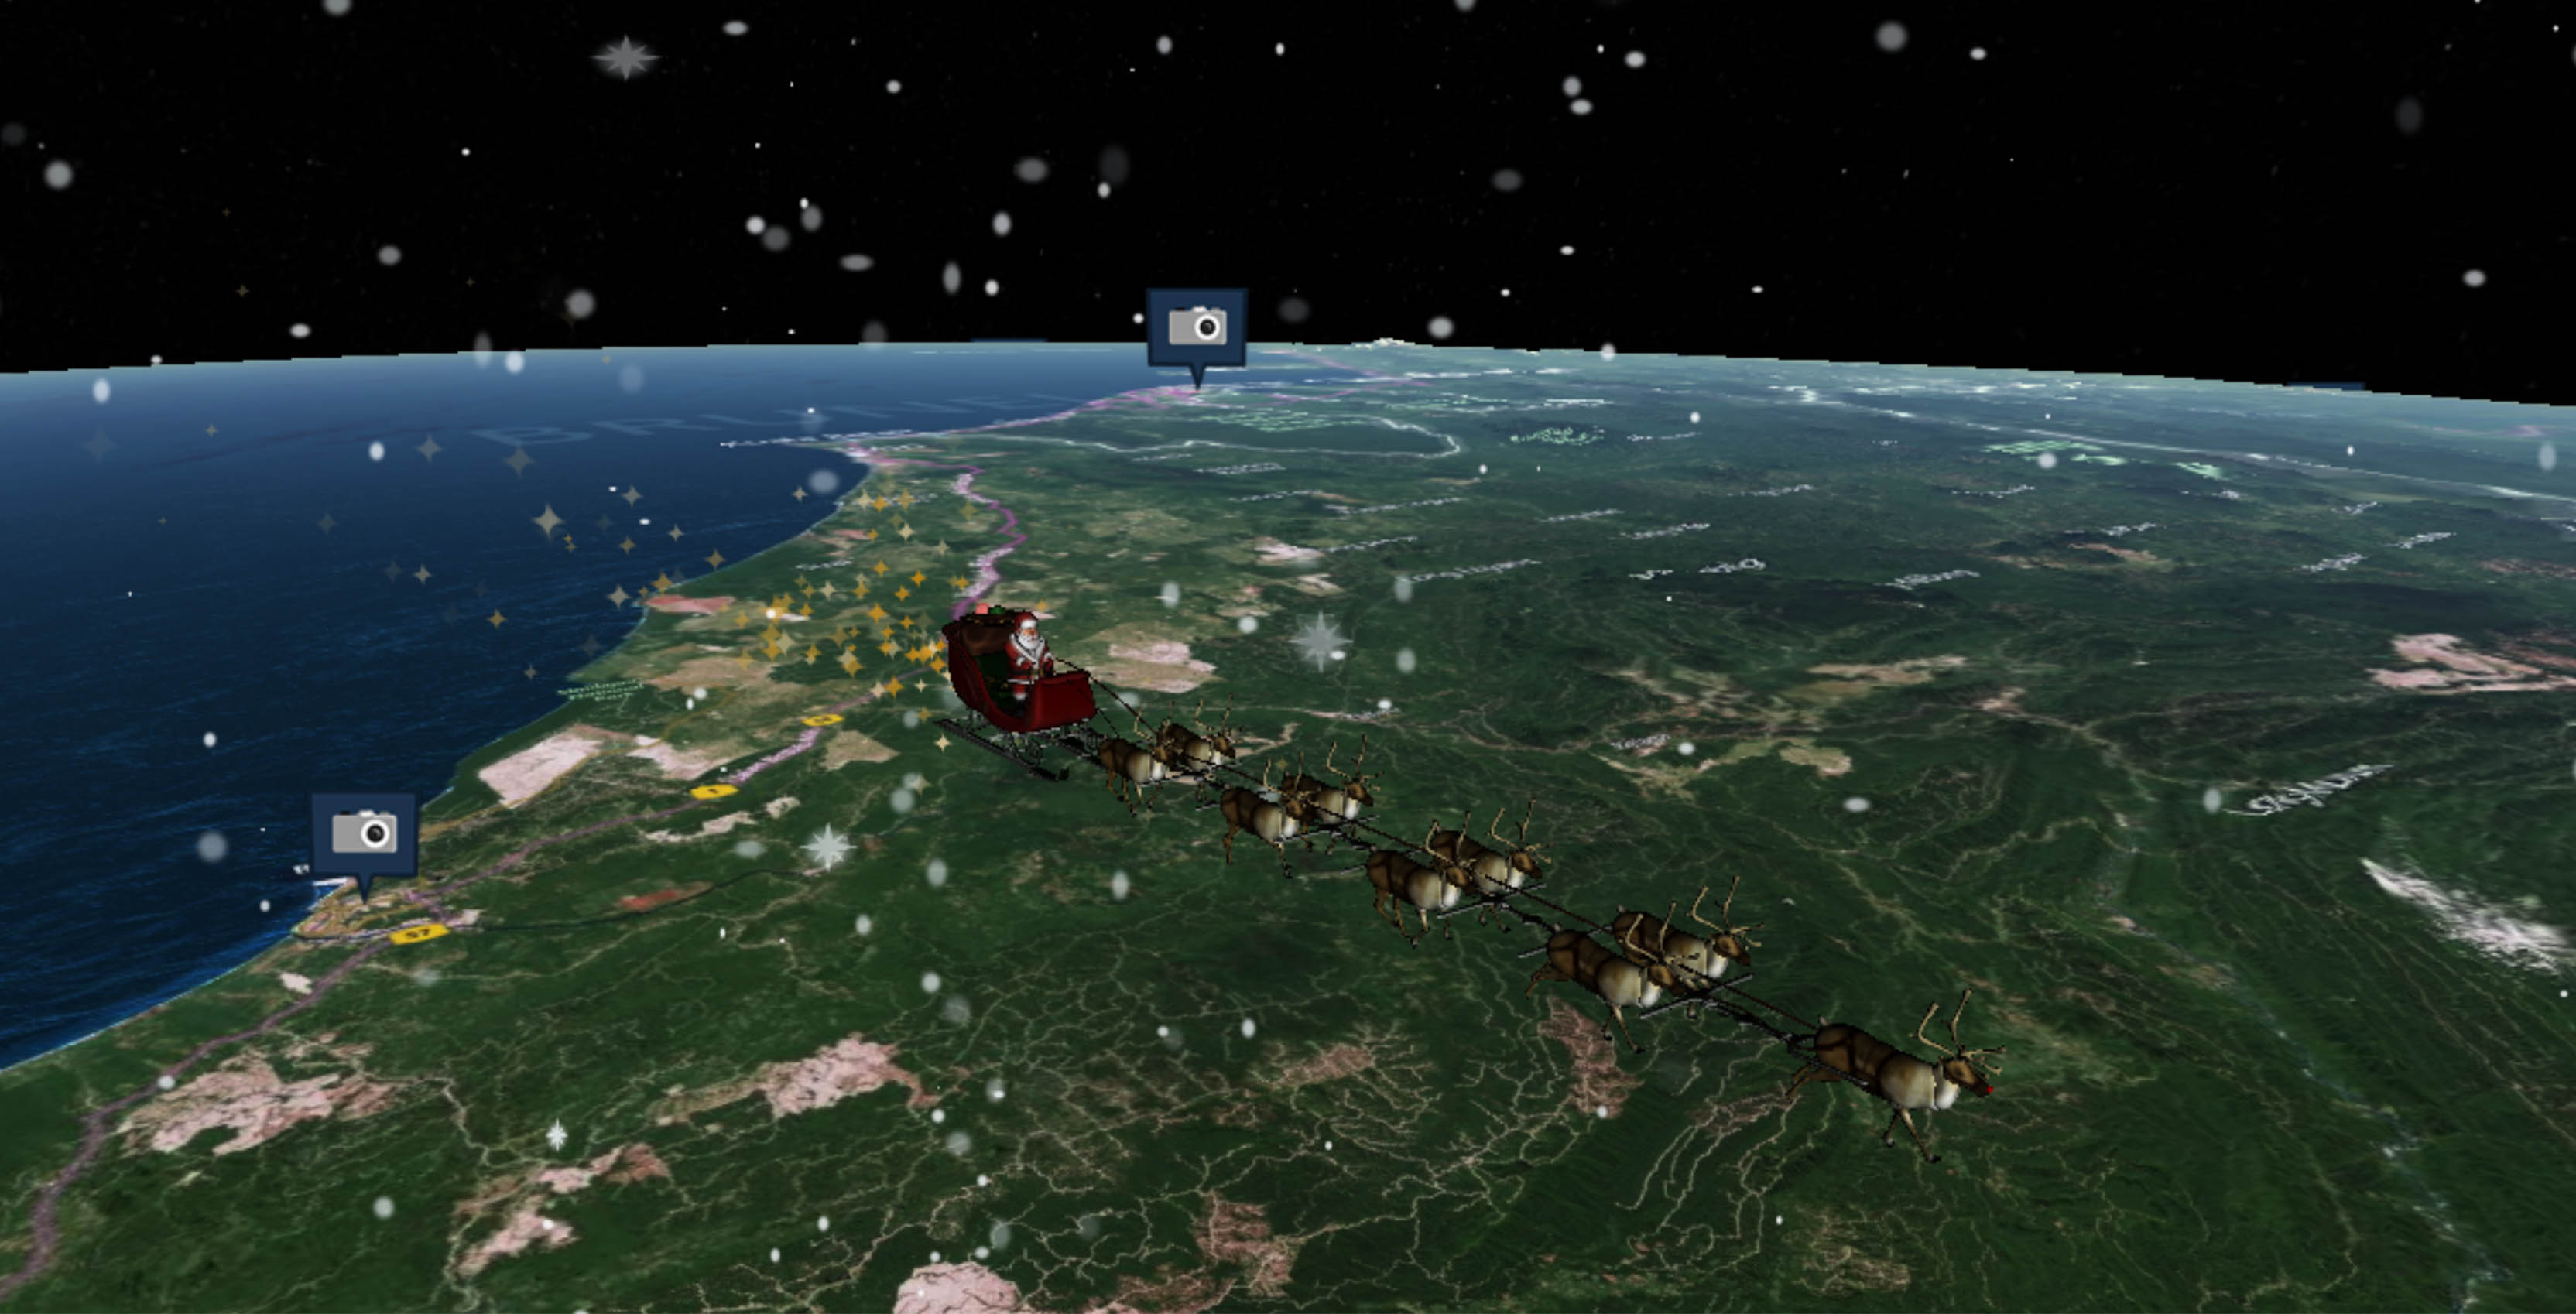 https://cdn.mobilesyrup.com/wp-content/uploads/2018/12/NORAD-santa-tracker.jpg